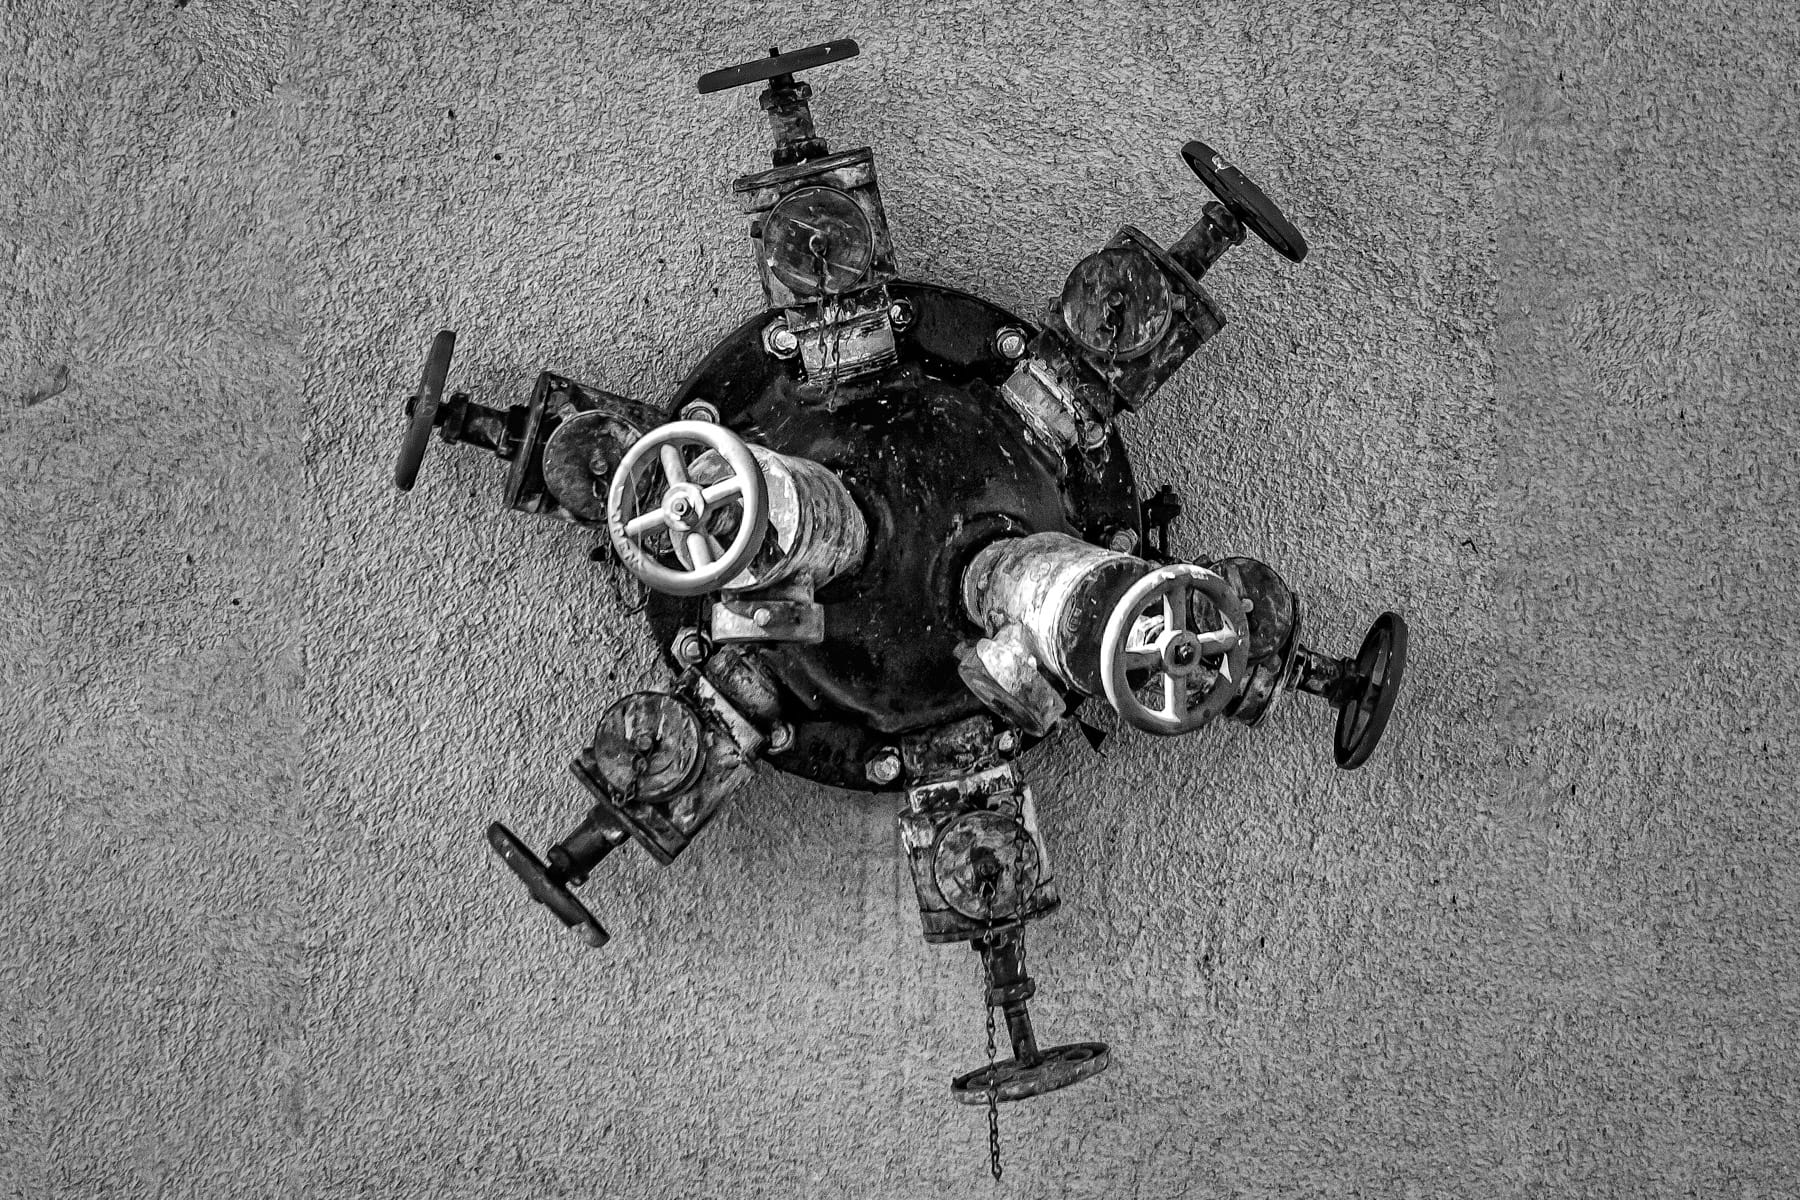 An unusual multi-headed hydrant at Bell Helicopter in Fort Worth.